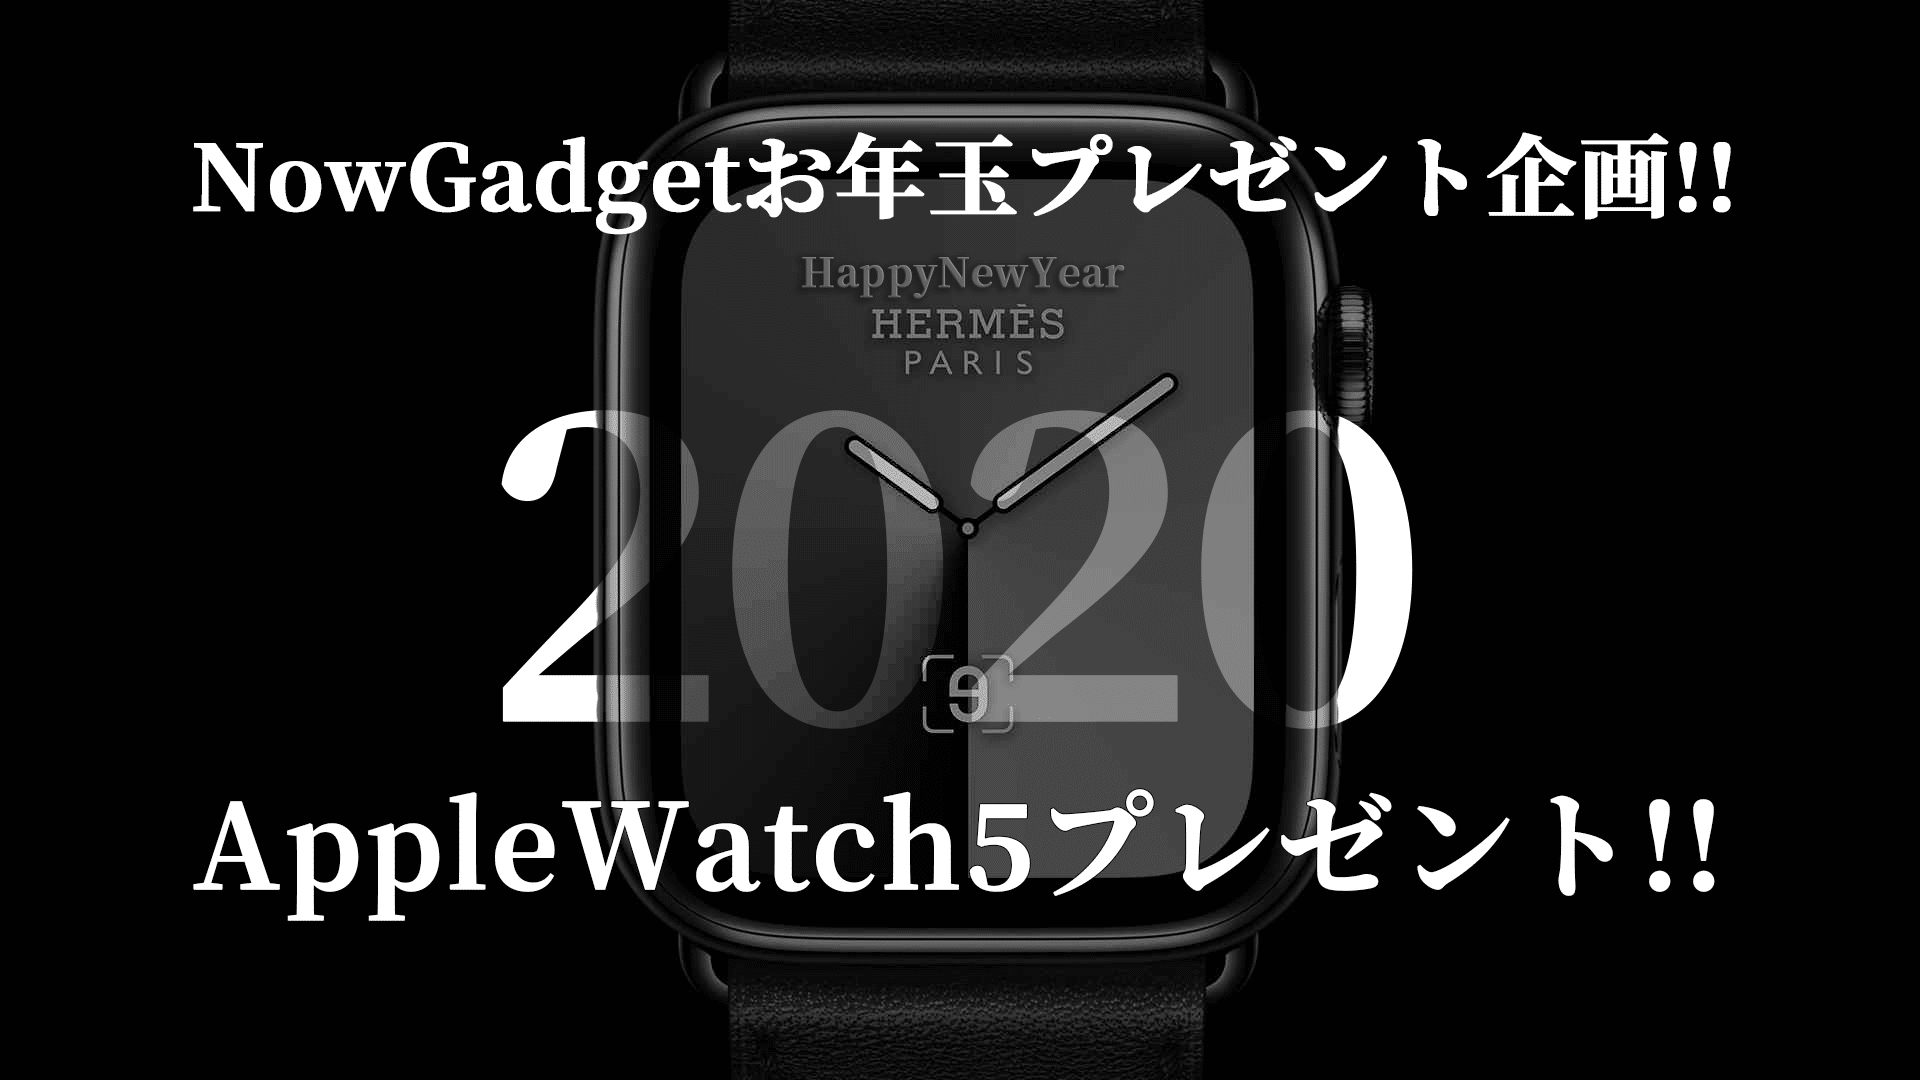 applewatch5pre - 【AppleWatch5プレゼント!!】お年玉企画!